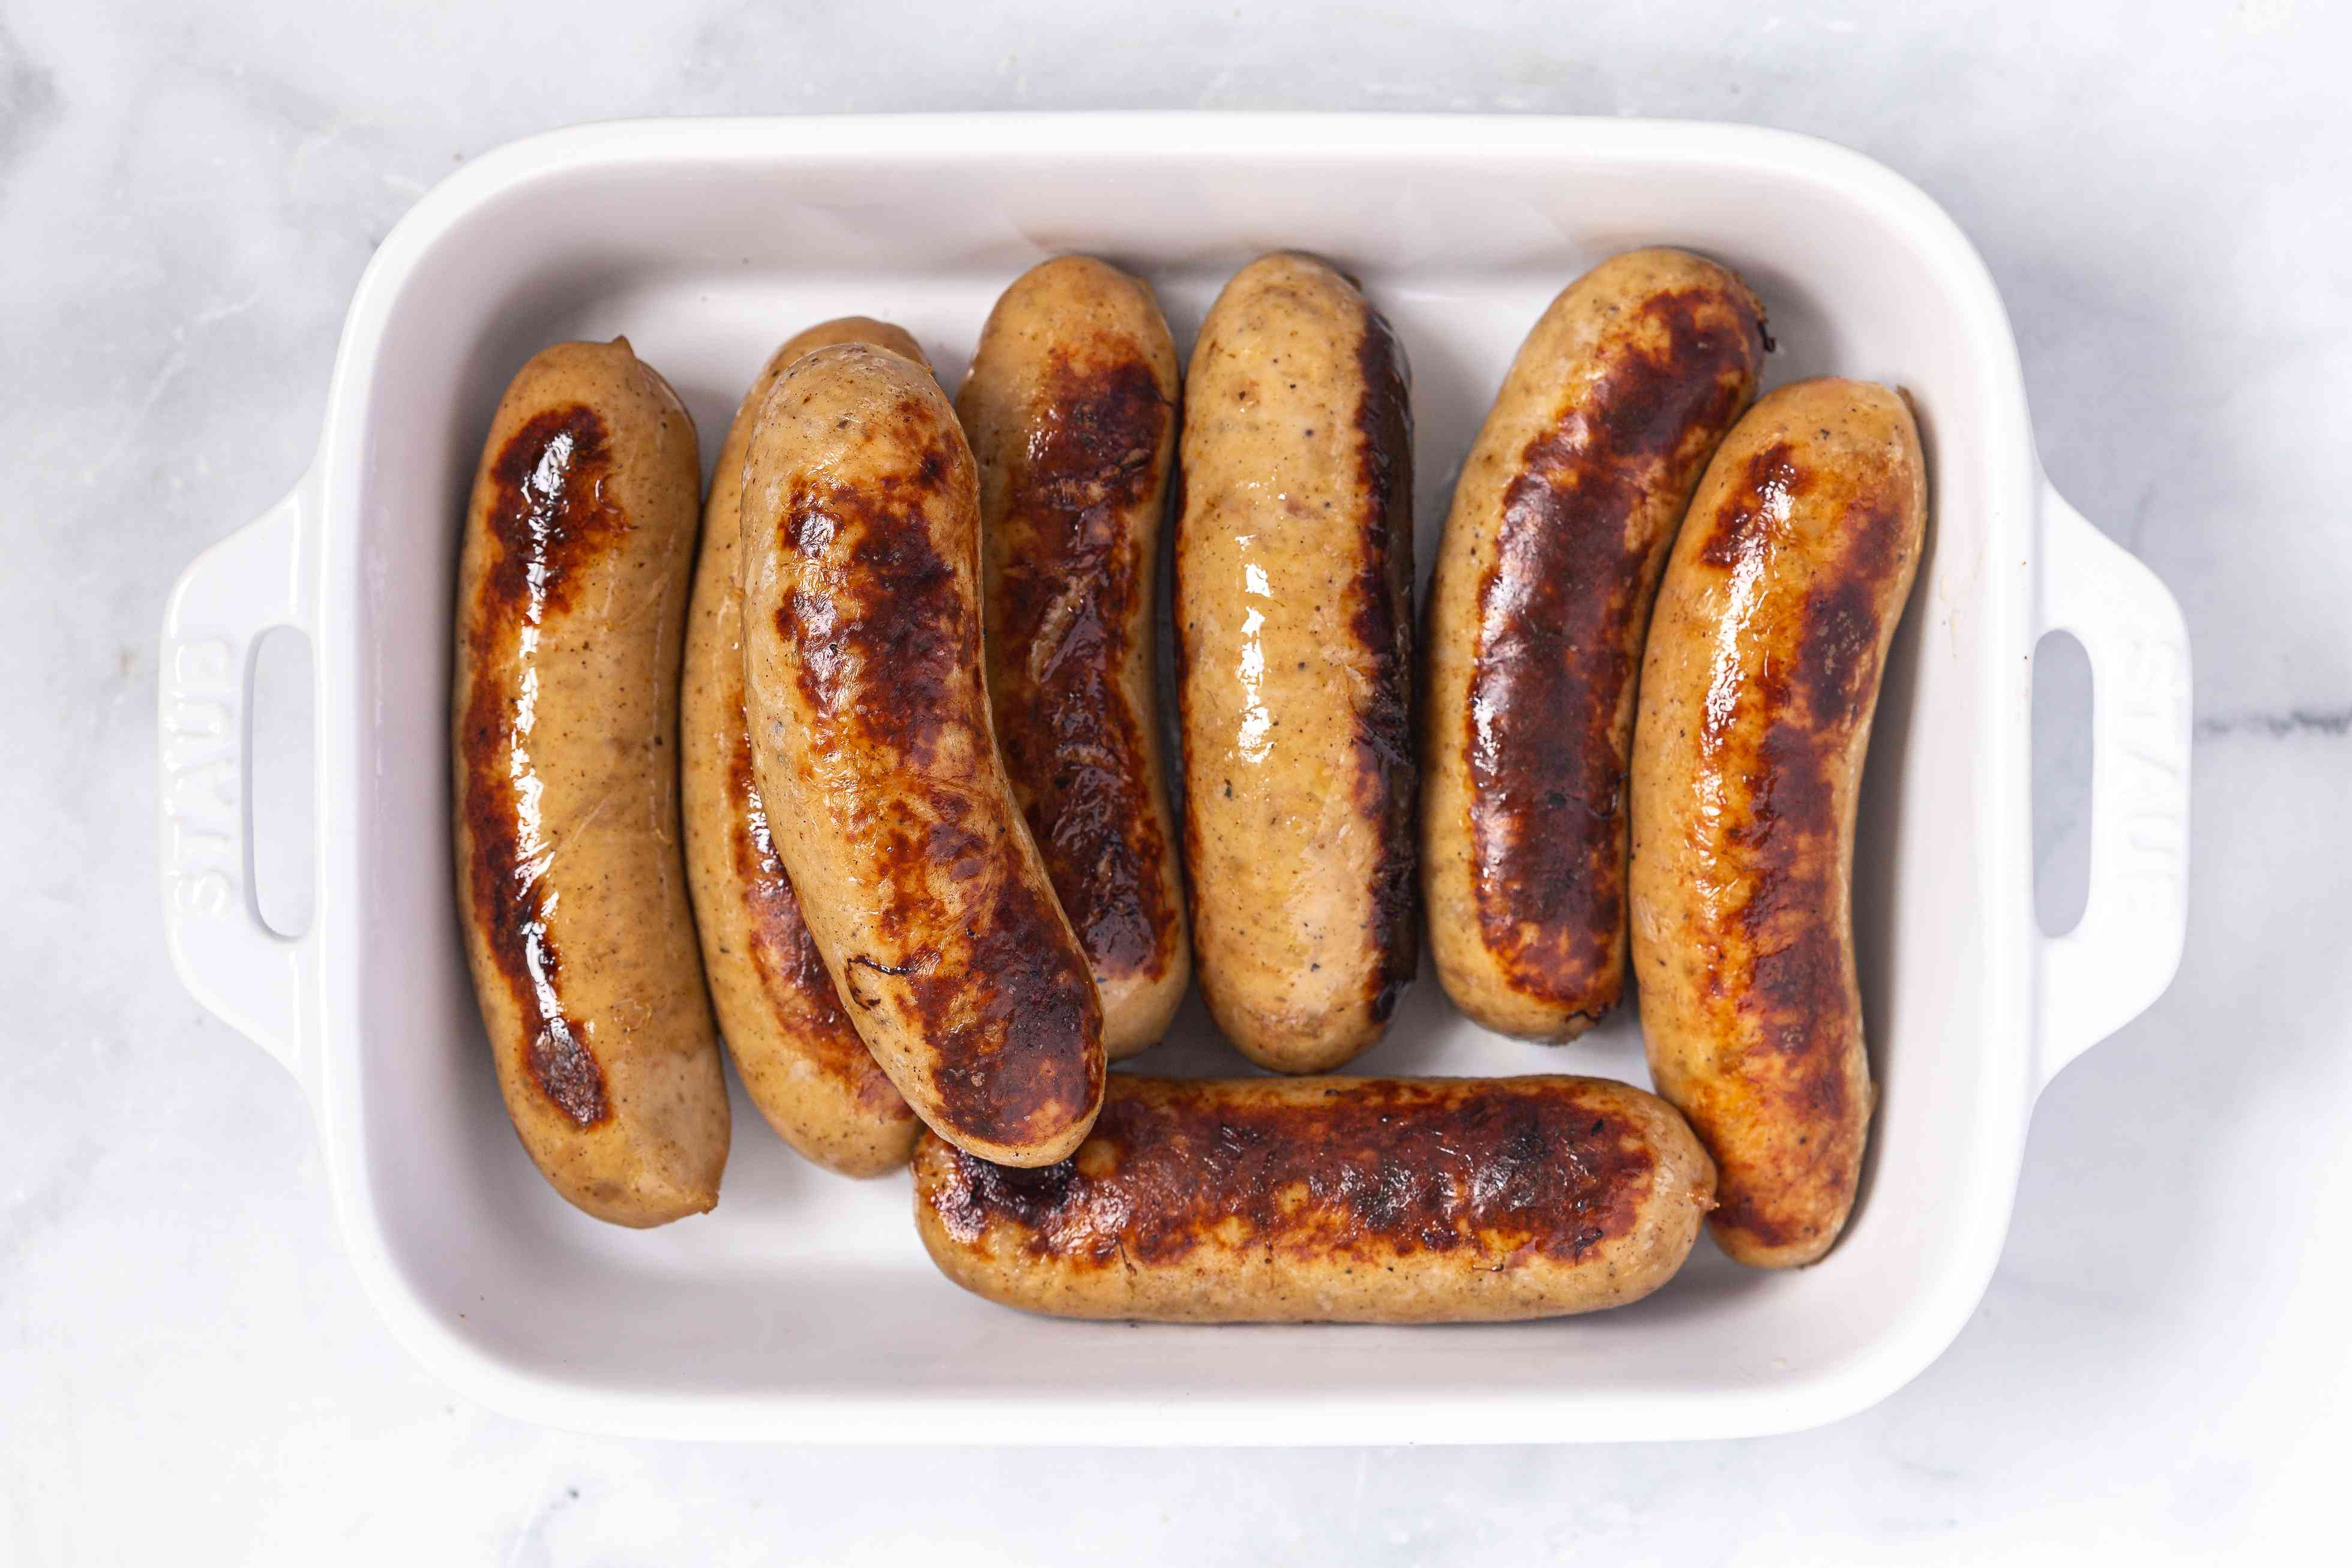 Cooked sausages in a casserole dish